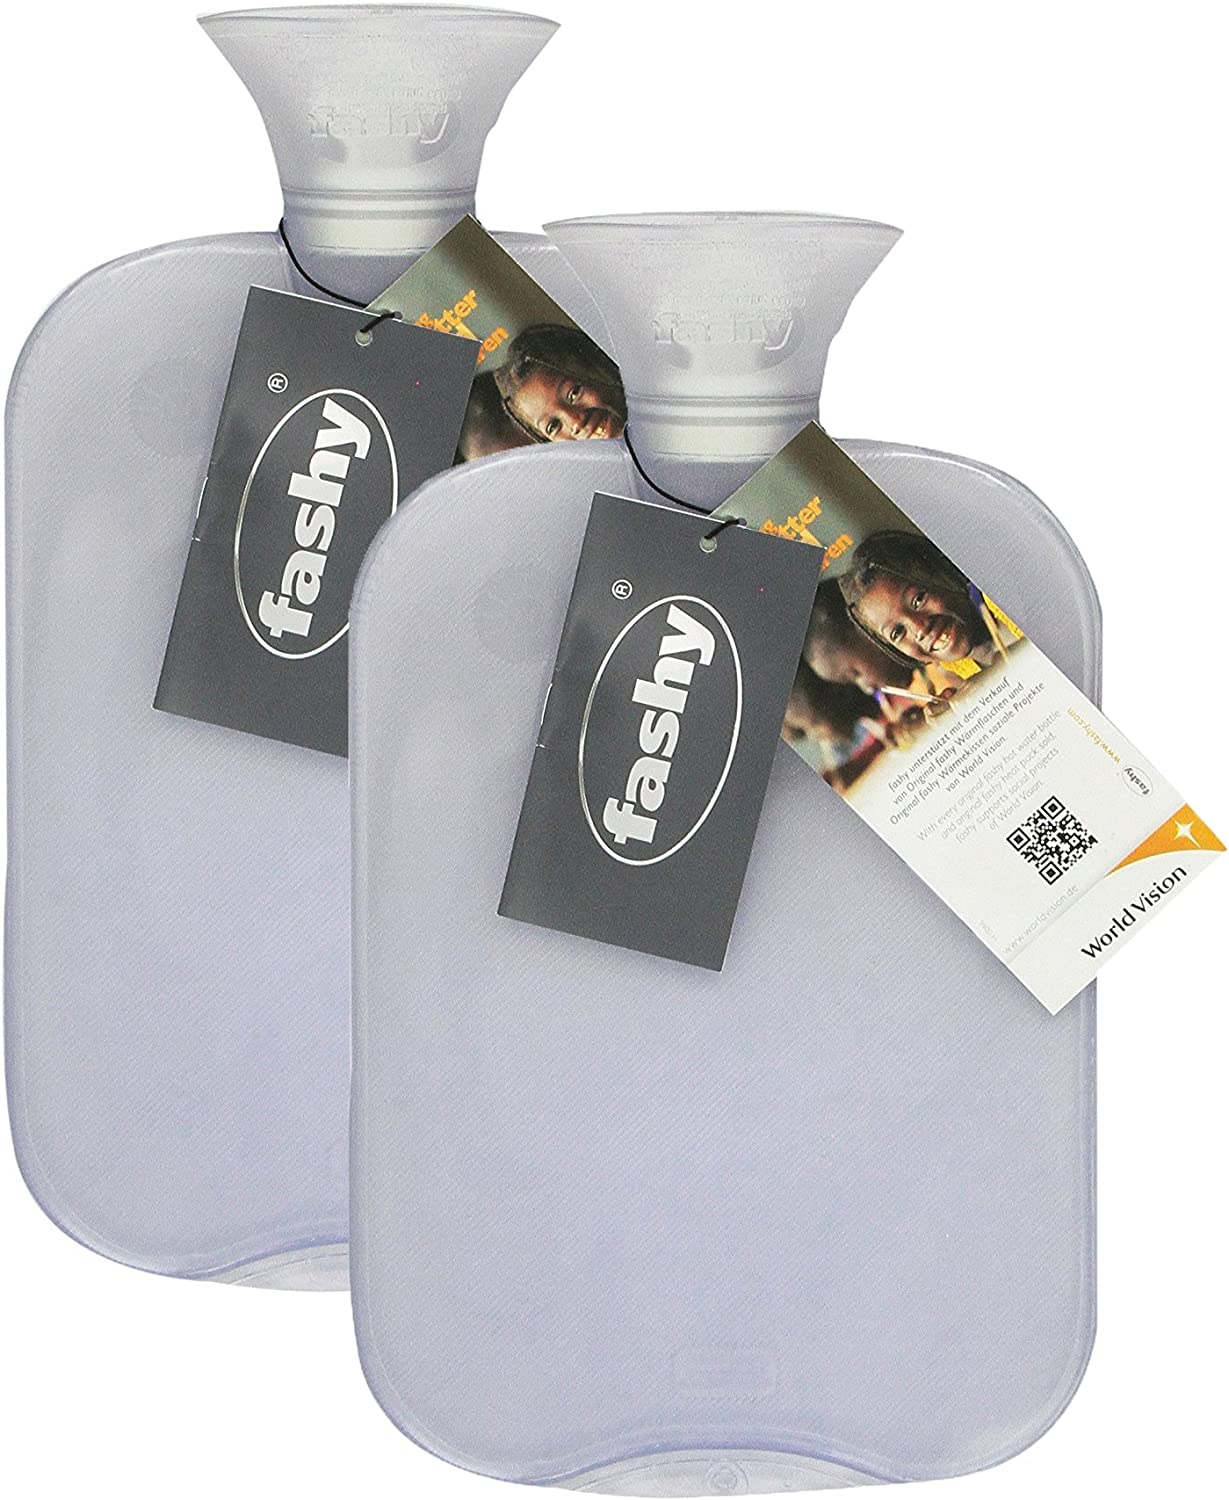 Transparent Classic Hot Water Bottle - Made in Germany (Clear- 2pk): Health & Personal Care